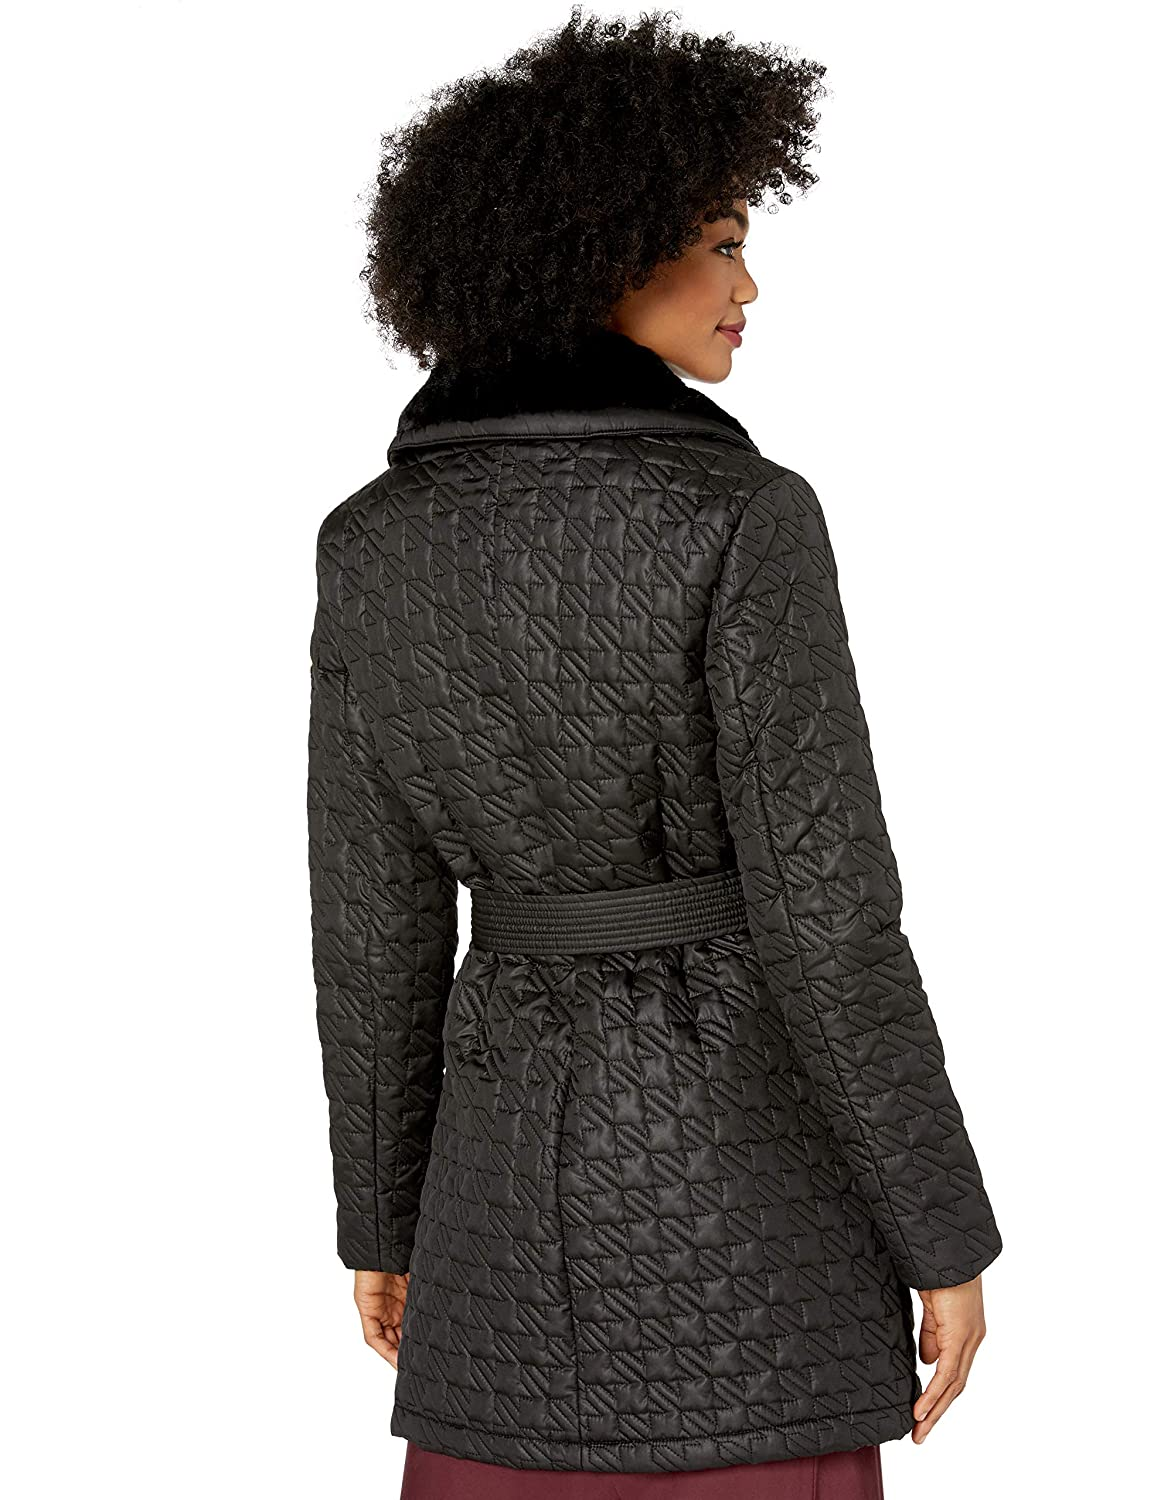 VIA SPIGA Womens Houndstooth Quilted Coat W//Faux-Fur Collar